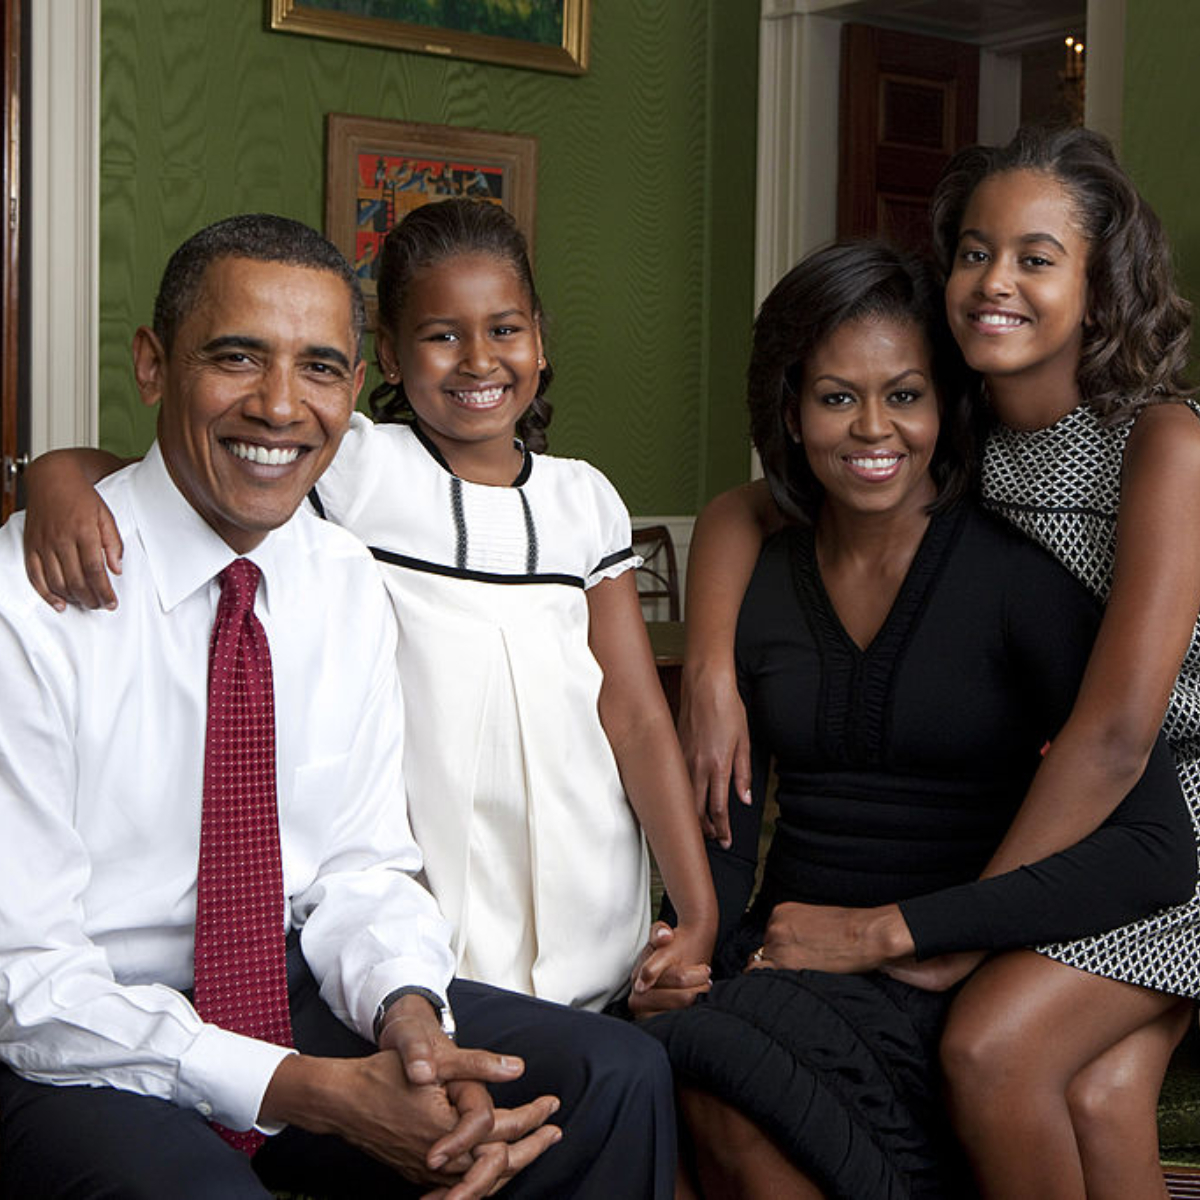 Michelle & Barack Obama's kids Sasha, Malia are all grown up; their Thanksgiving pic leaves Twitter in awe